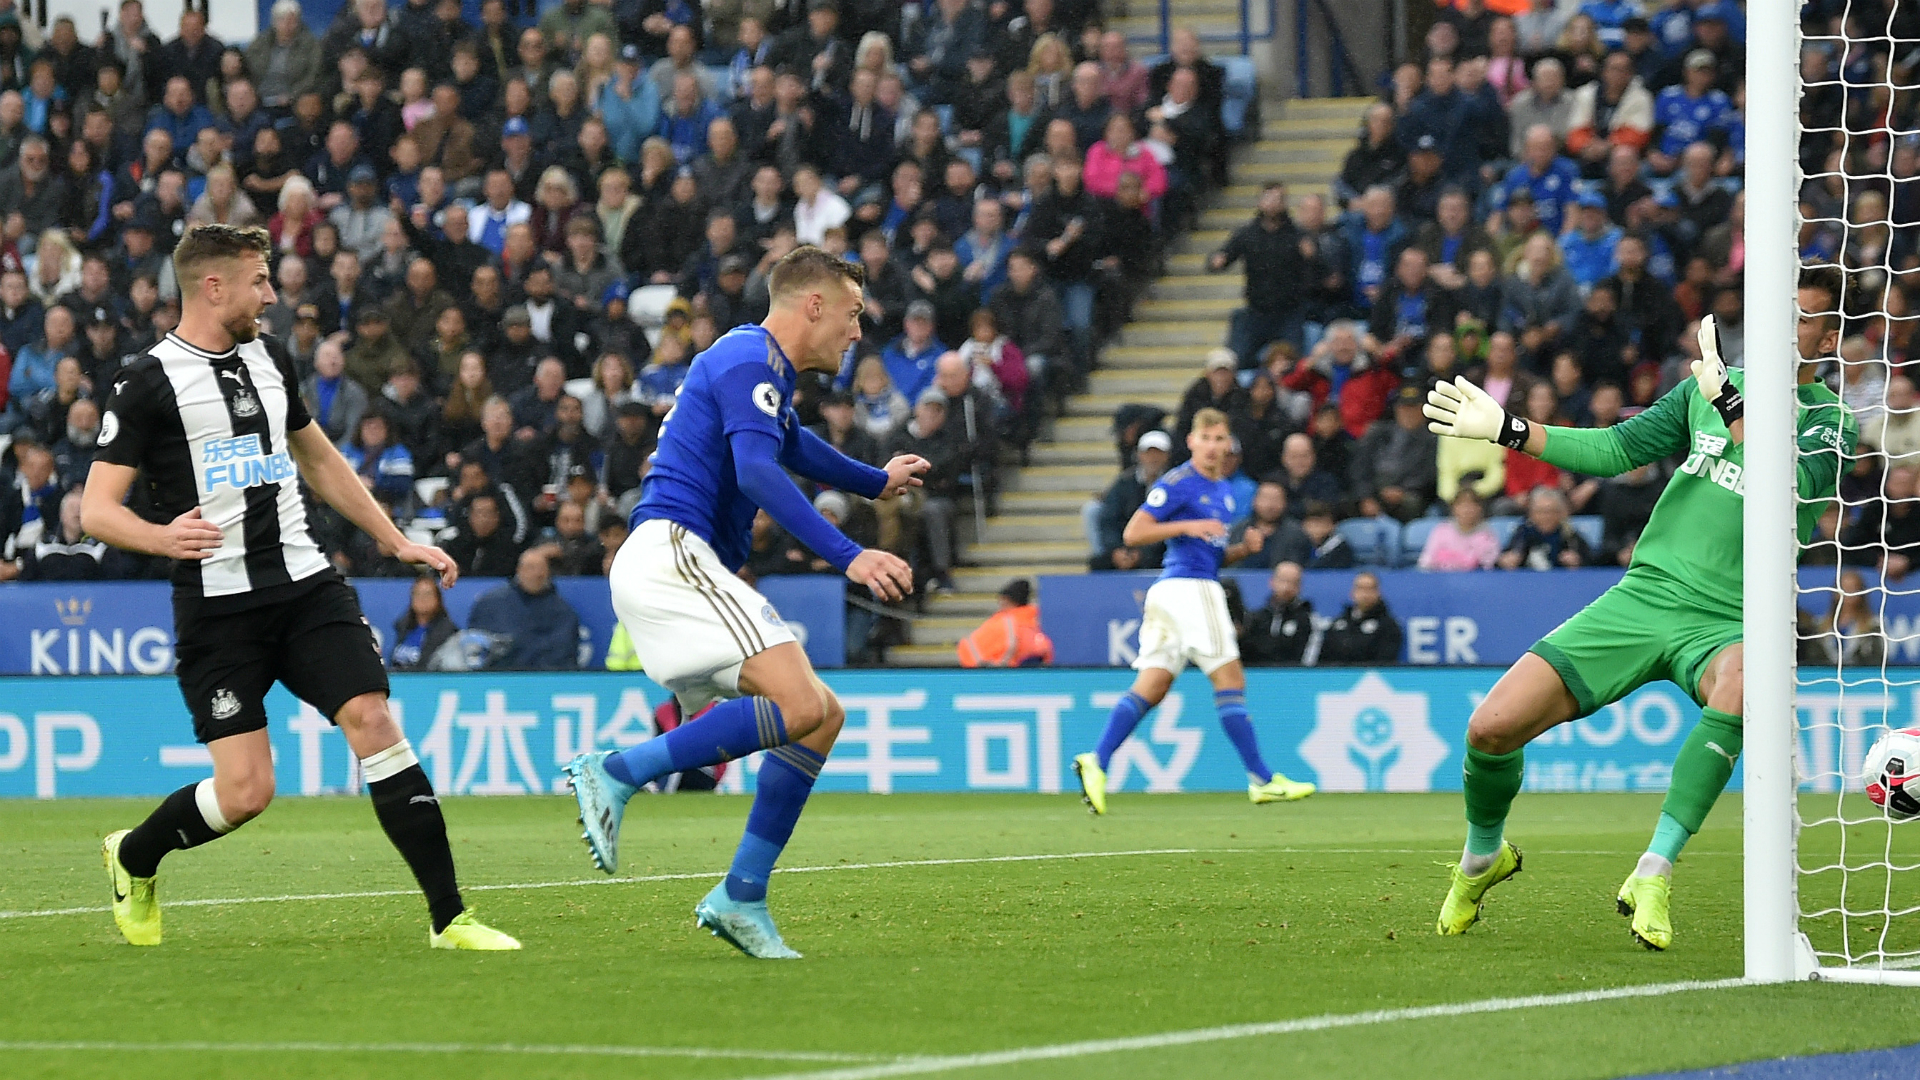 Leicester City 5-0 Newcastle United: Vardy bags brace as Hayden sees red